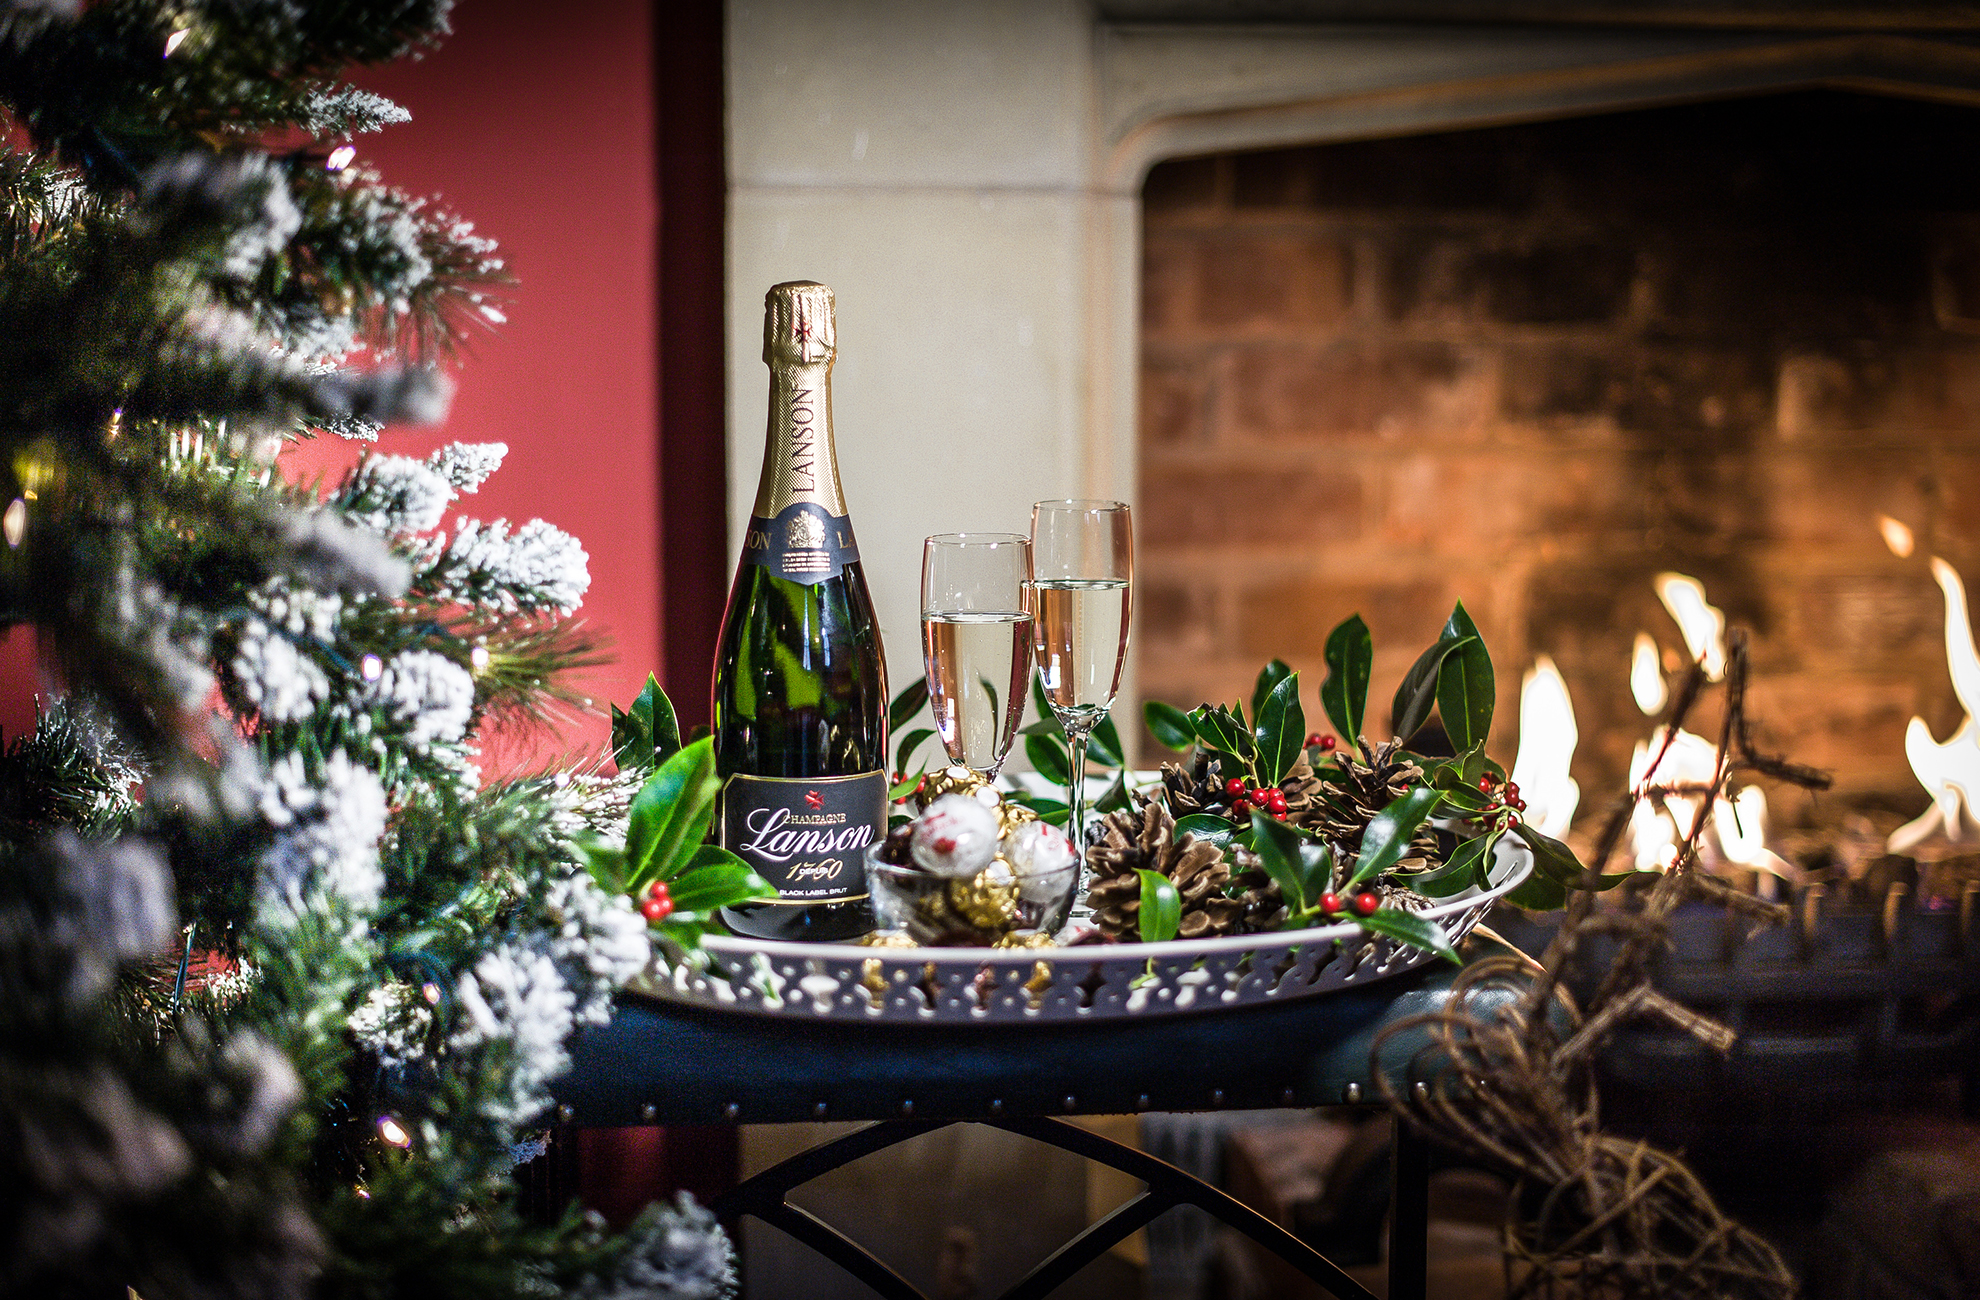 During your stay in the Cottages at Combermere Abbey why not sip Champagne next to a cosy fire